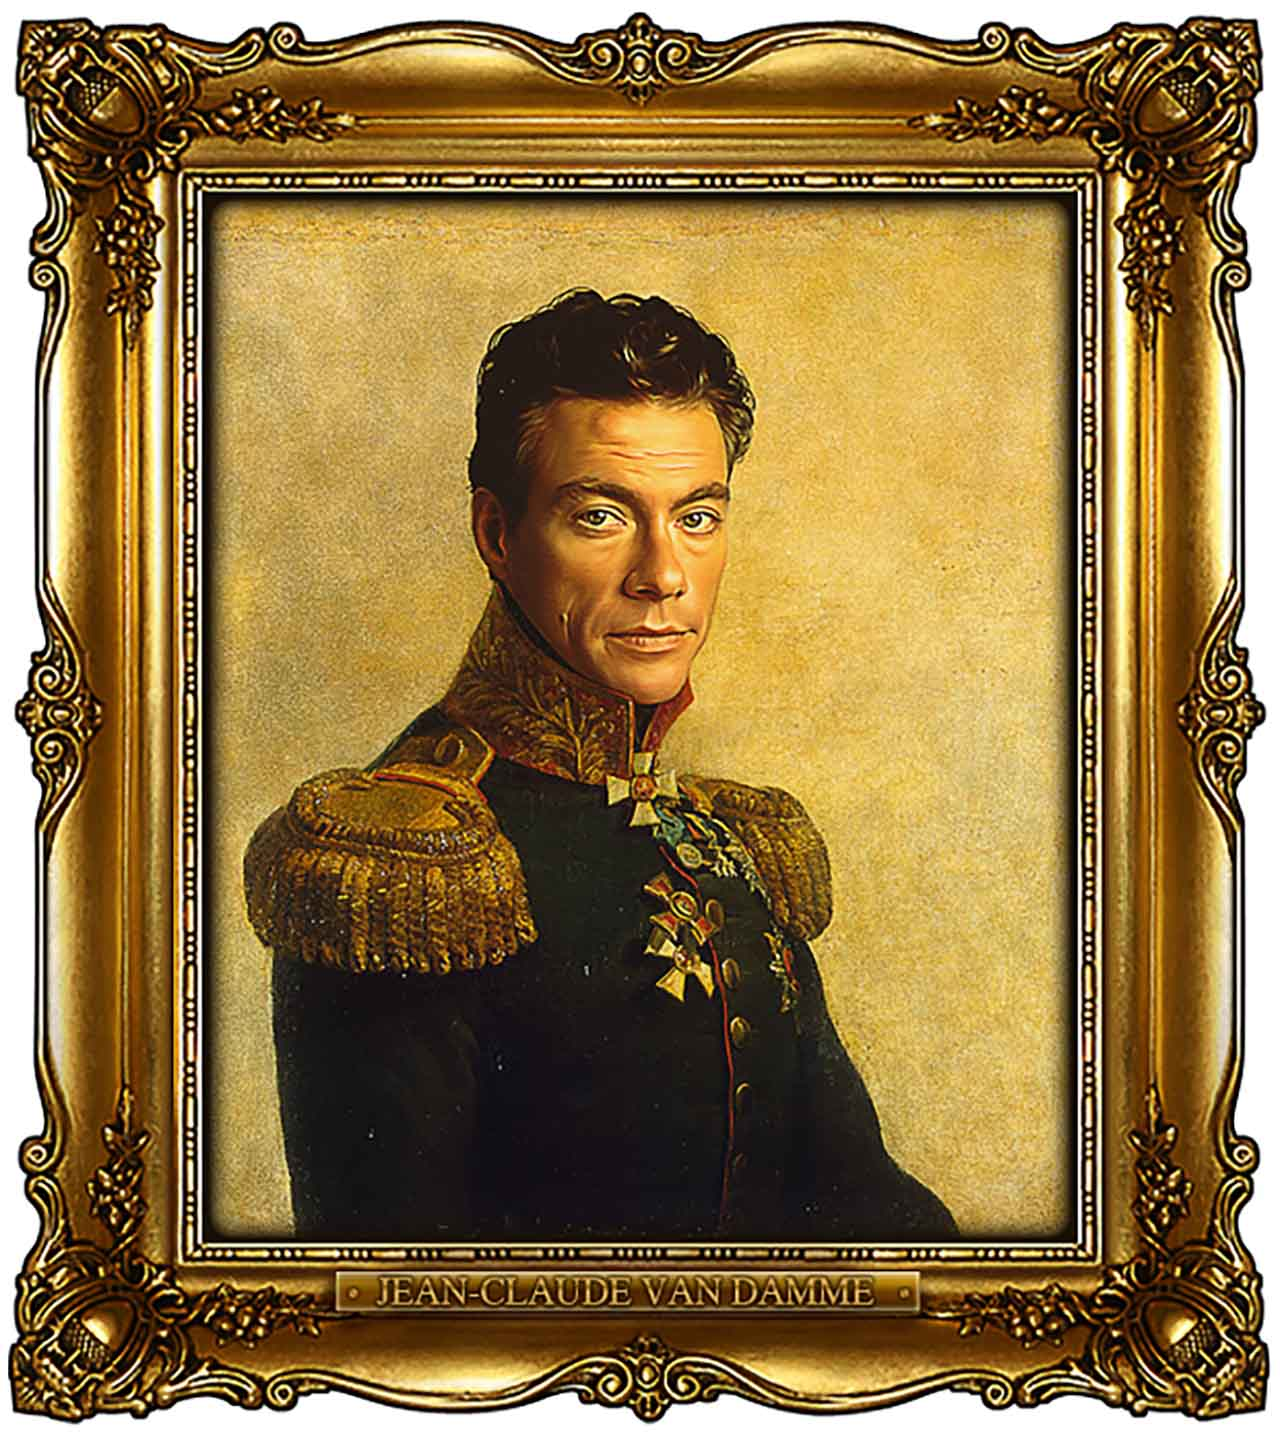 Artist Turns Famous Actors Into Russian Generals - Jean-Claude Van Damme